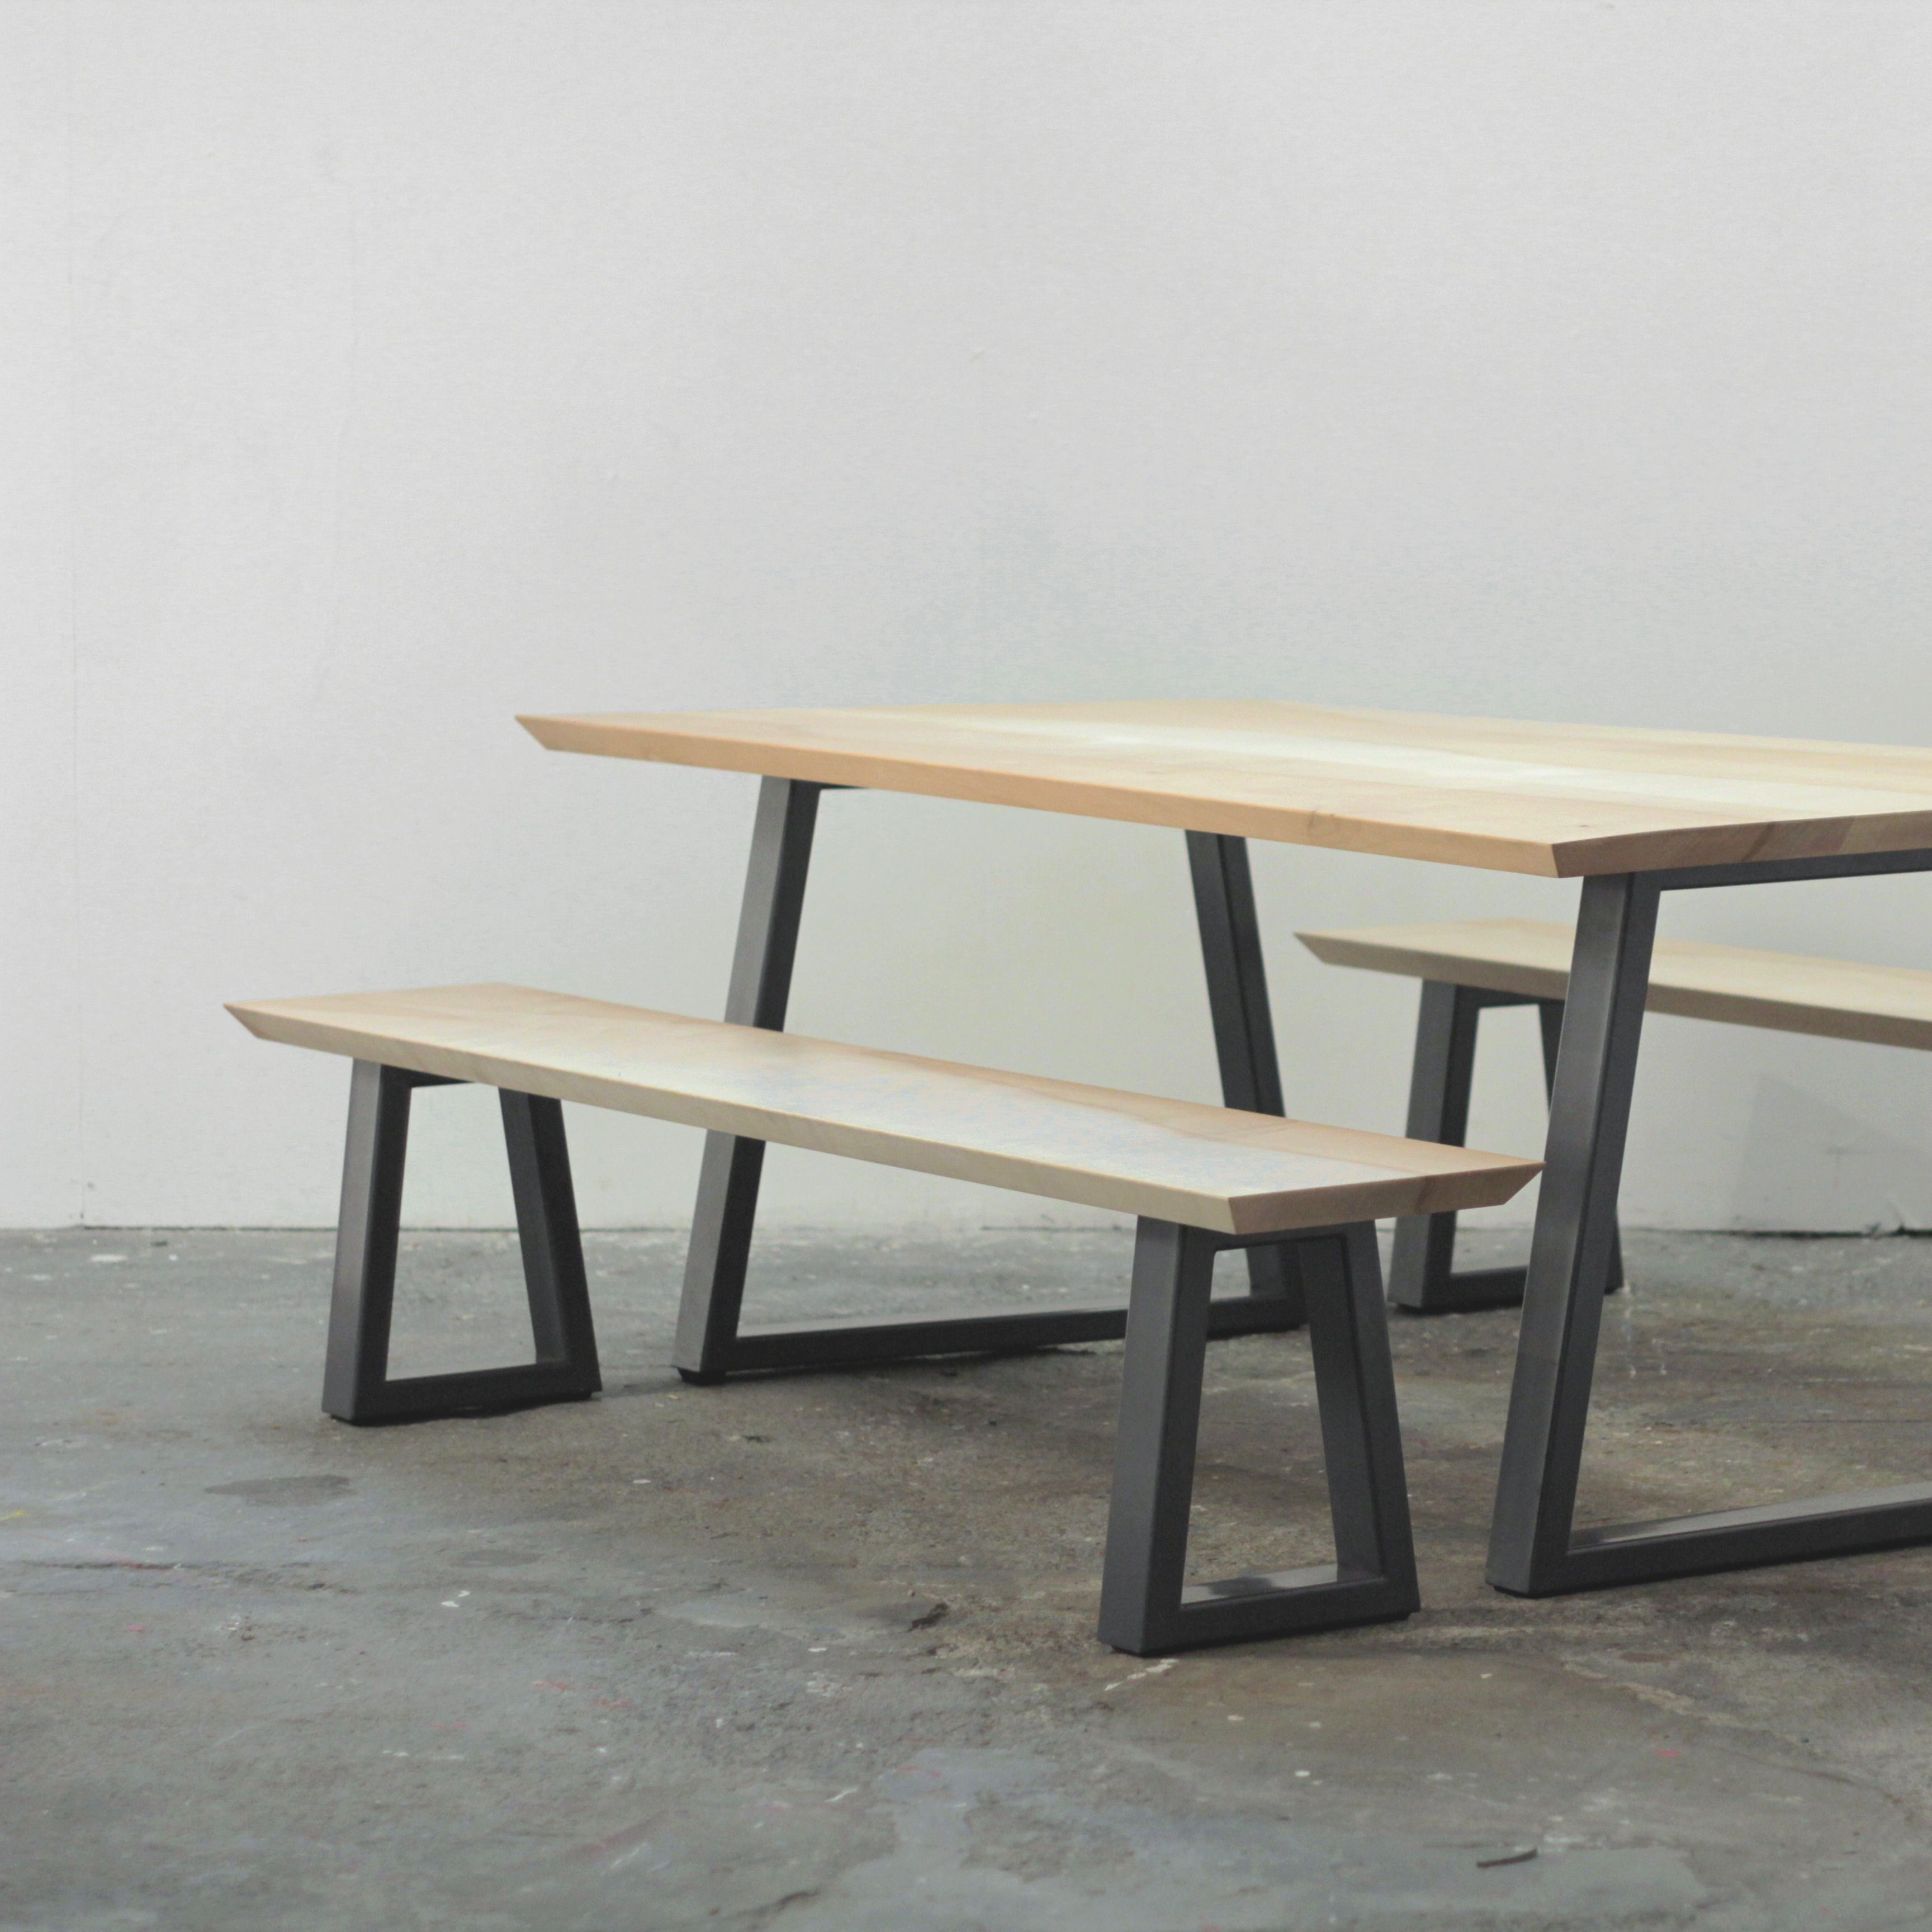 Wood And Steel Dining Table And Bench Set In 2020 Table Bench